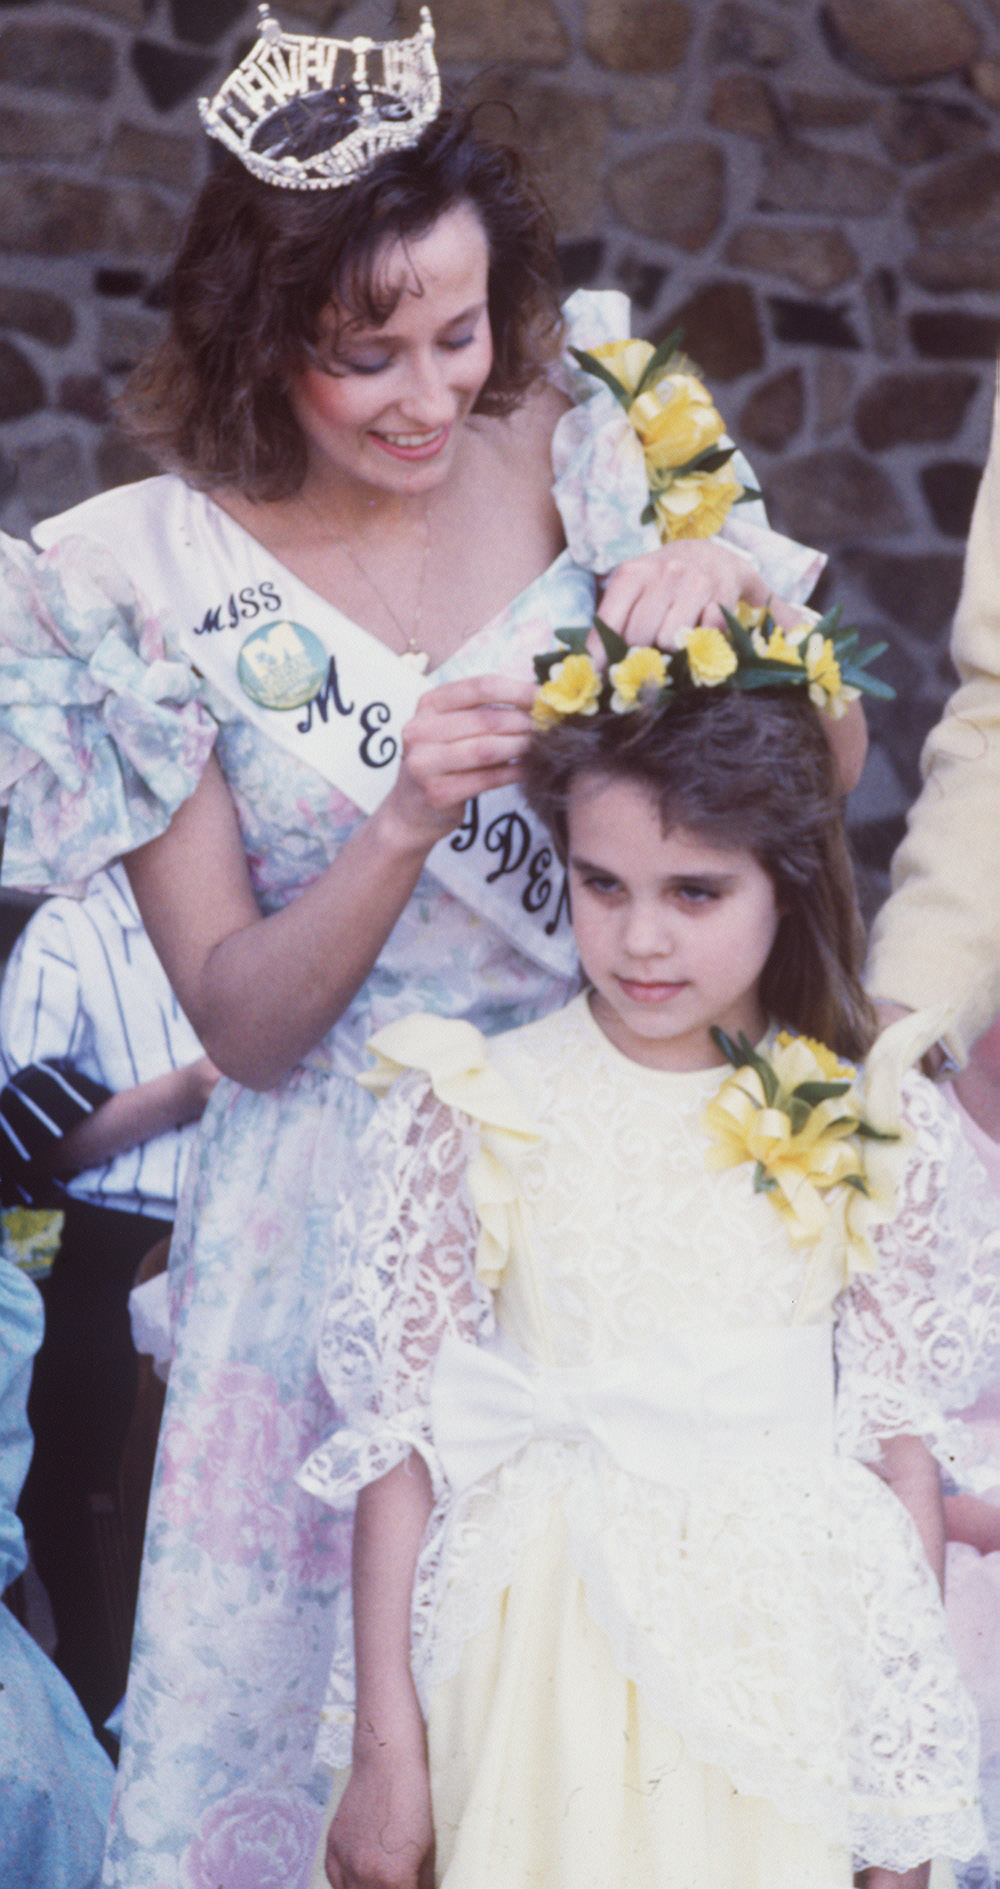 Little Miss Daffodil 1990-Clarissa Grabiec, being crowned by Miss Meriden on April 22, 1990.